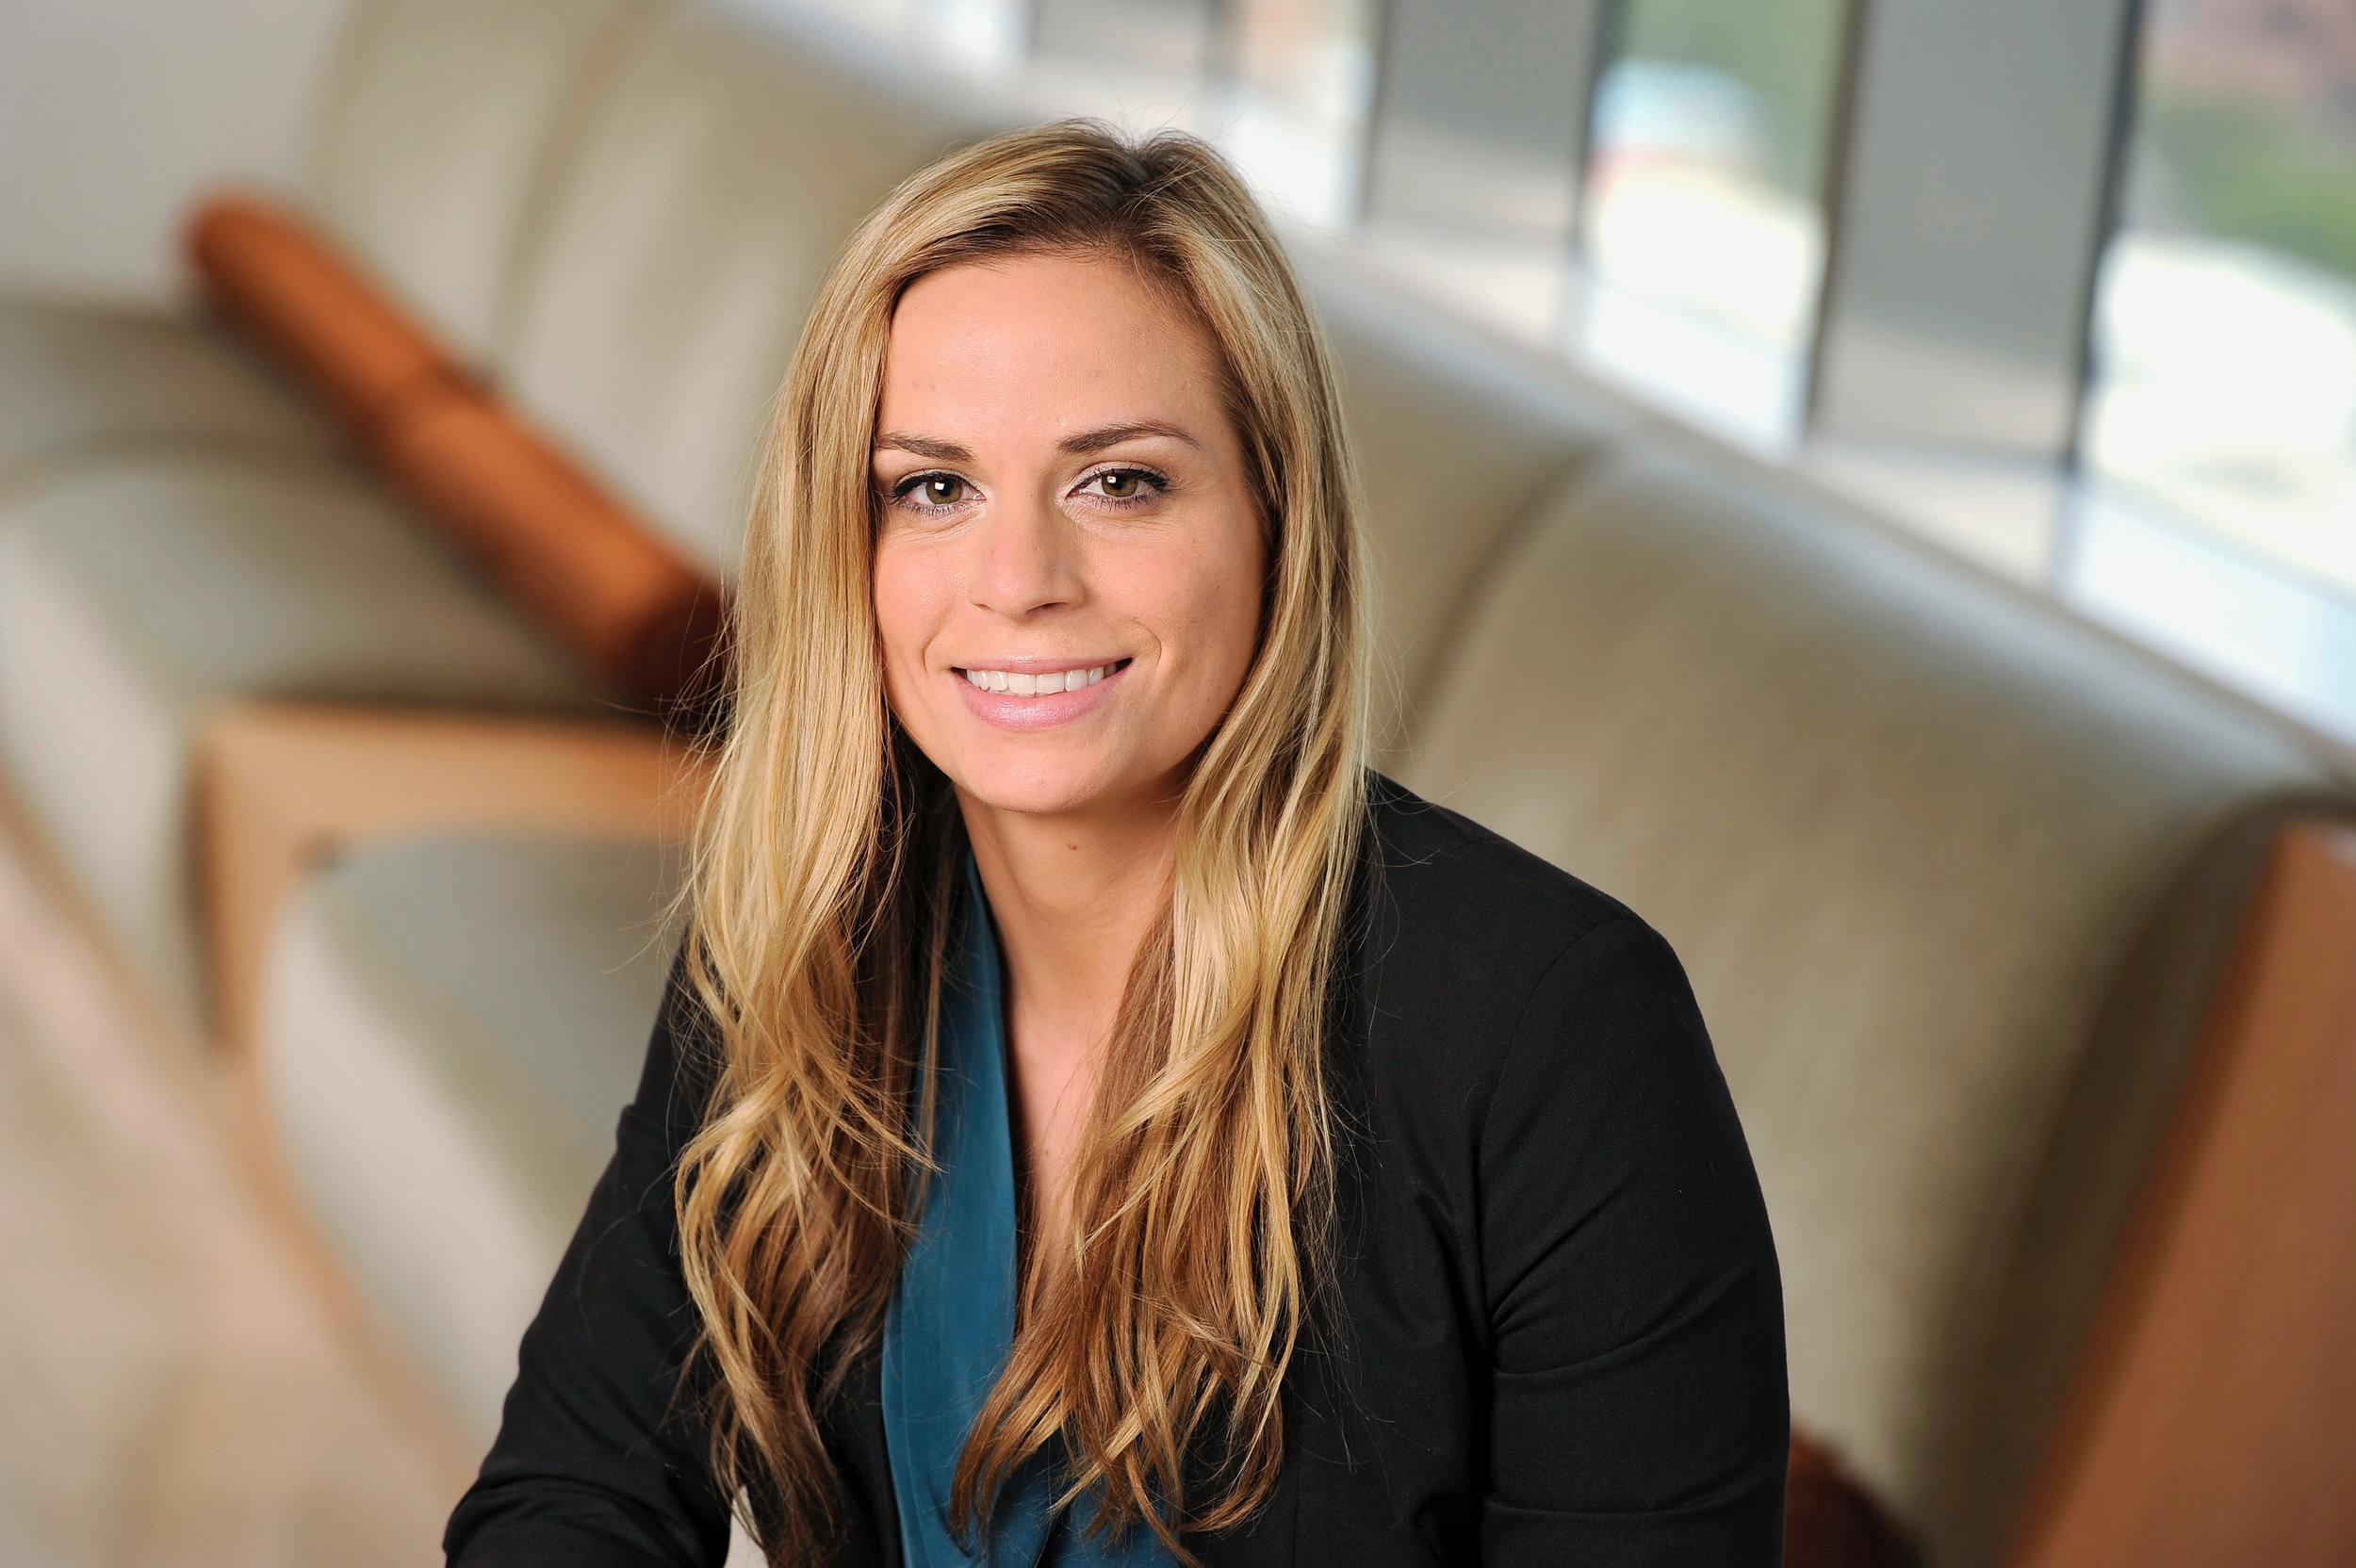 Nicole Sollberger - Nicole Sollberger is an evolutionary astrologer and the Managing Director of Selenic LLC, a new type of management consulting company that provides C-suite executives bespoke and highly tailored strategic business advice using metaphysical tools such as astrology and numerology.Nicole is also an accomplished entertainment attorney and certified Pilates instructor. She holds a J.D. from UCLA School of Law and a B.A. in Communication and Music Industry from the University of Southern California. She is a public speaker, visual artist, and published poet and journalist. Nicole's mission is to challenge conventional wisdom and established norms, to inspire and counsel clients toward self-empowerment, and to raise the consciousness of the planet.